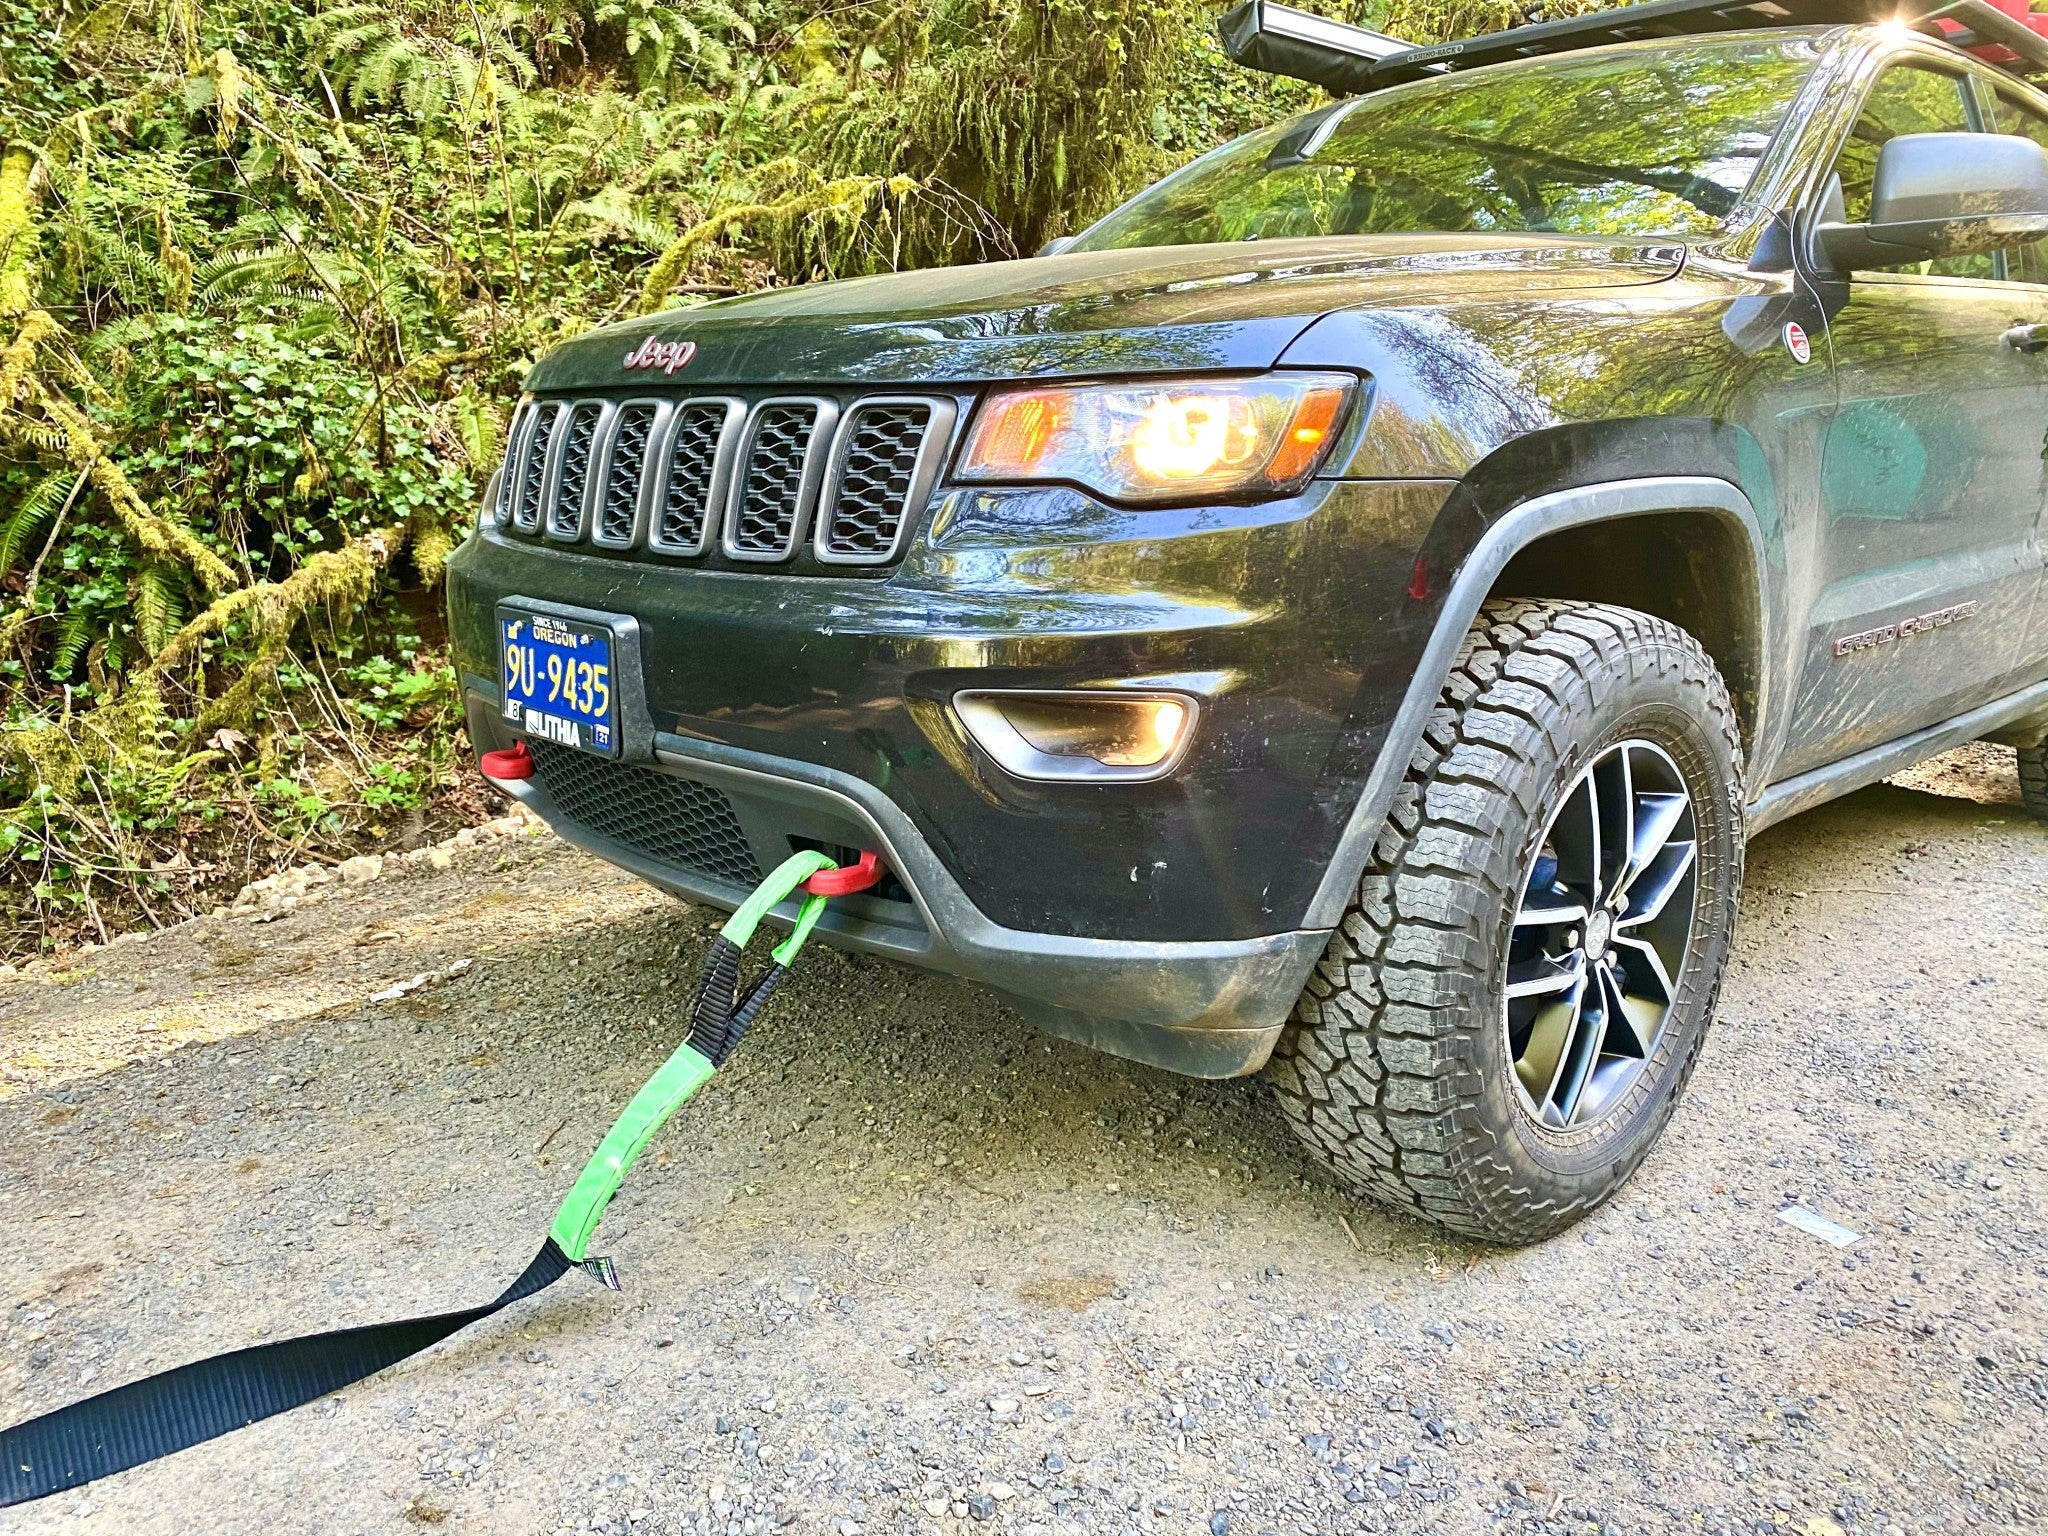 Best Recovery Straps to Get You Unstuck